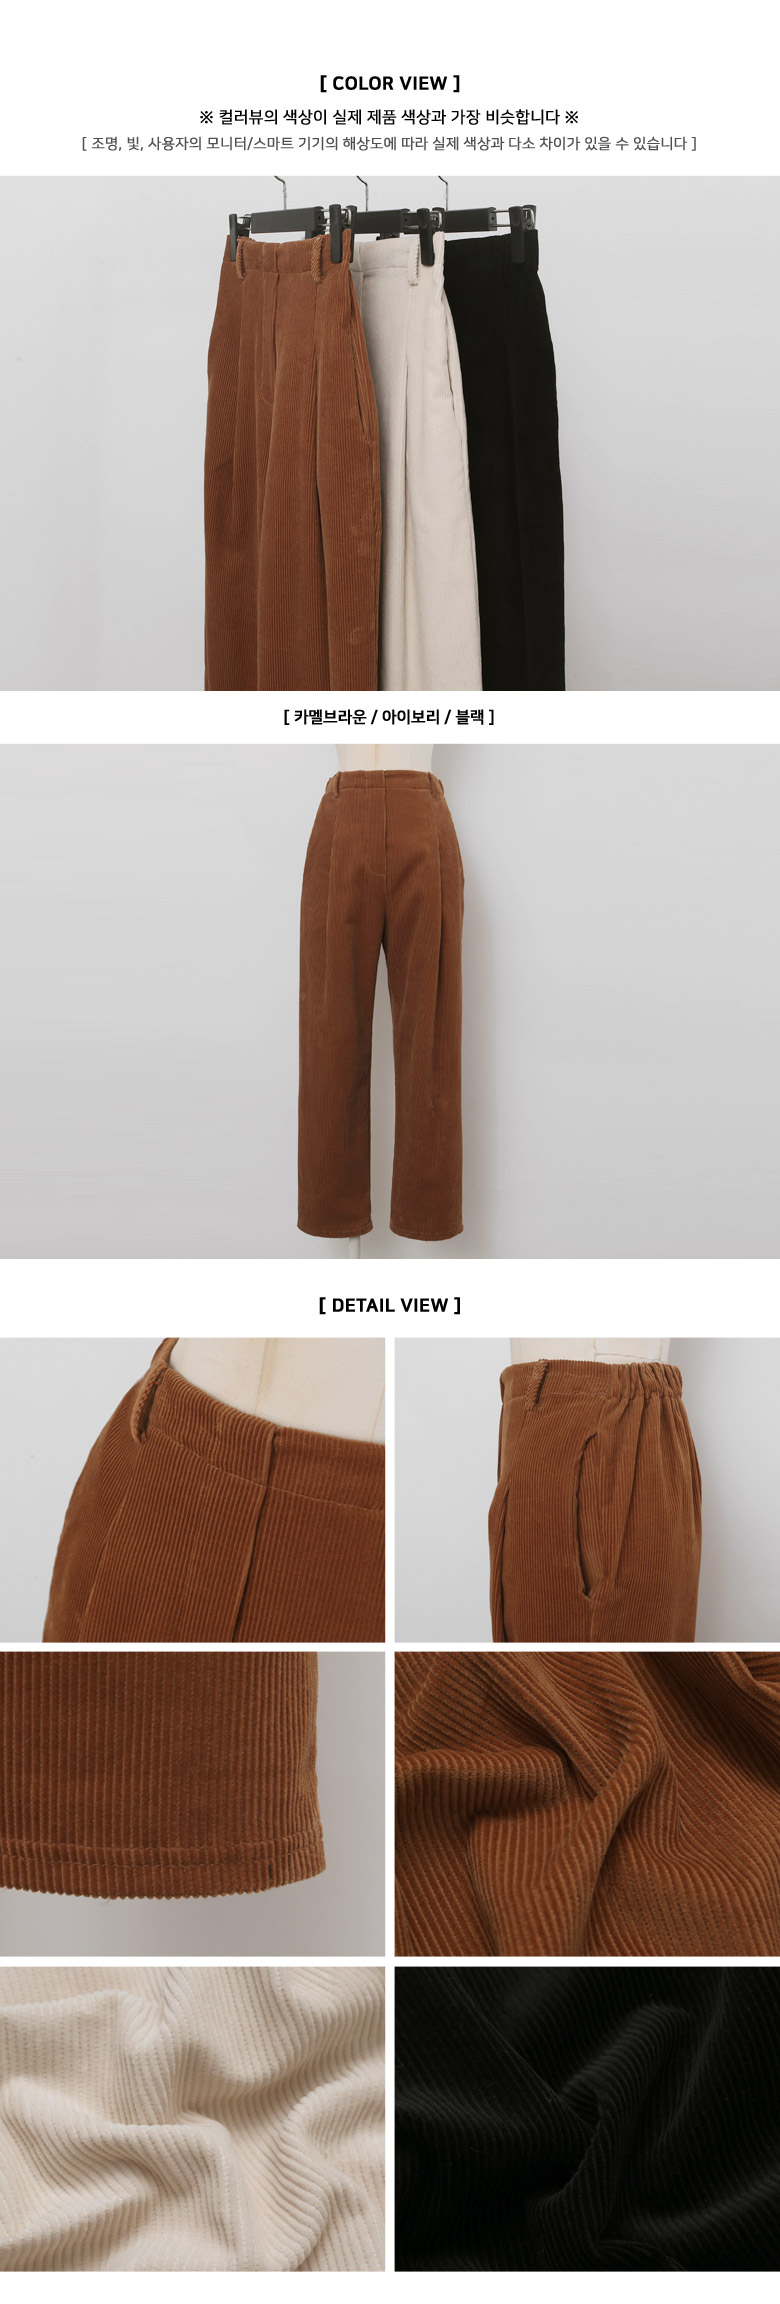 Scone Corduroy Pin Tuck Banding Pants